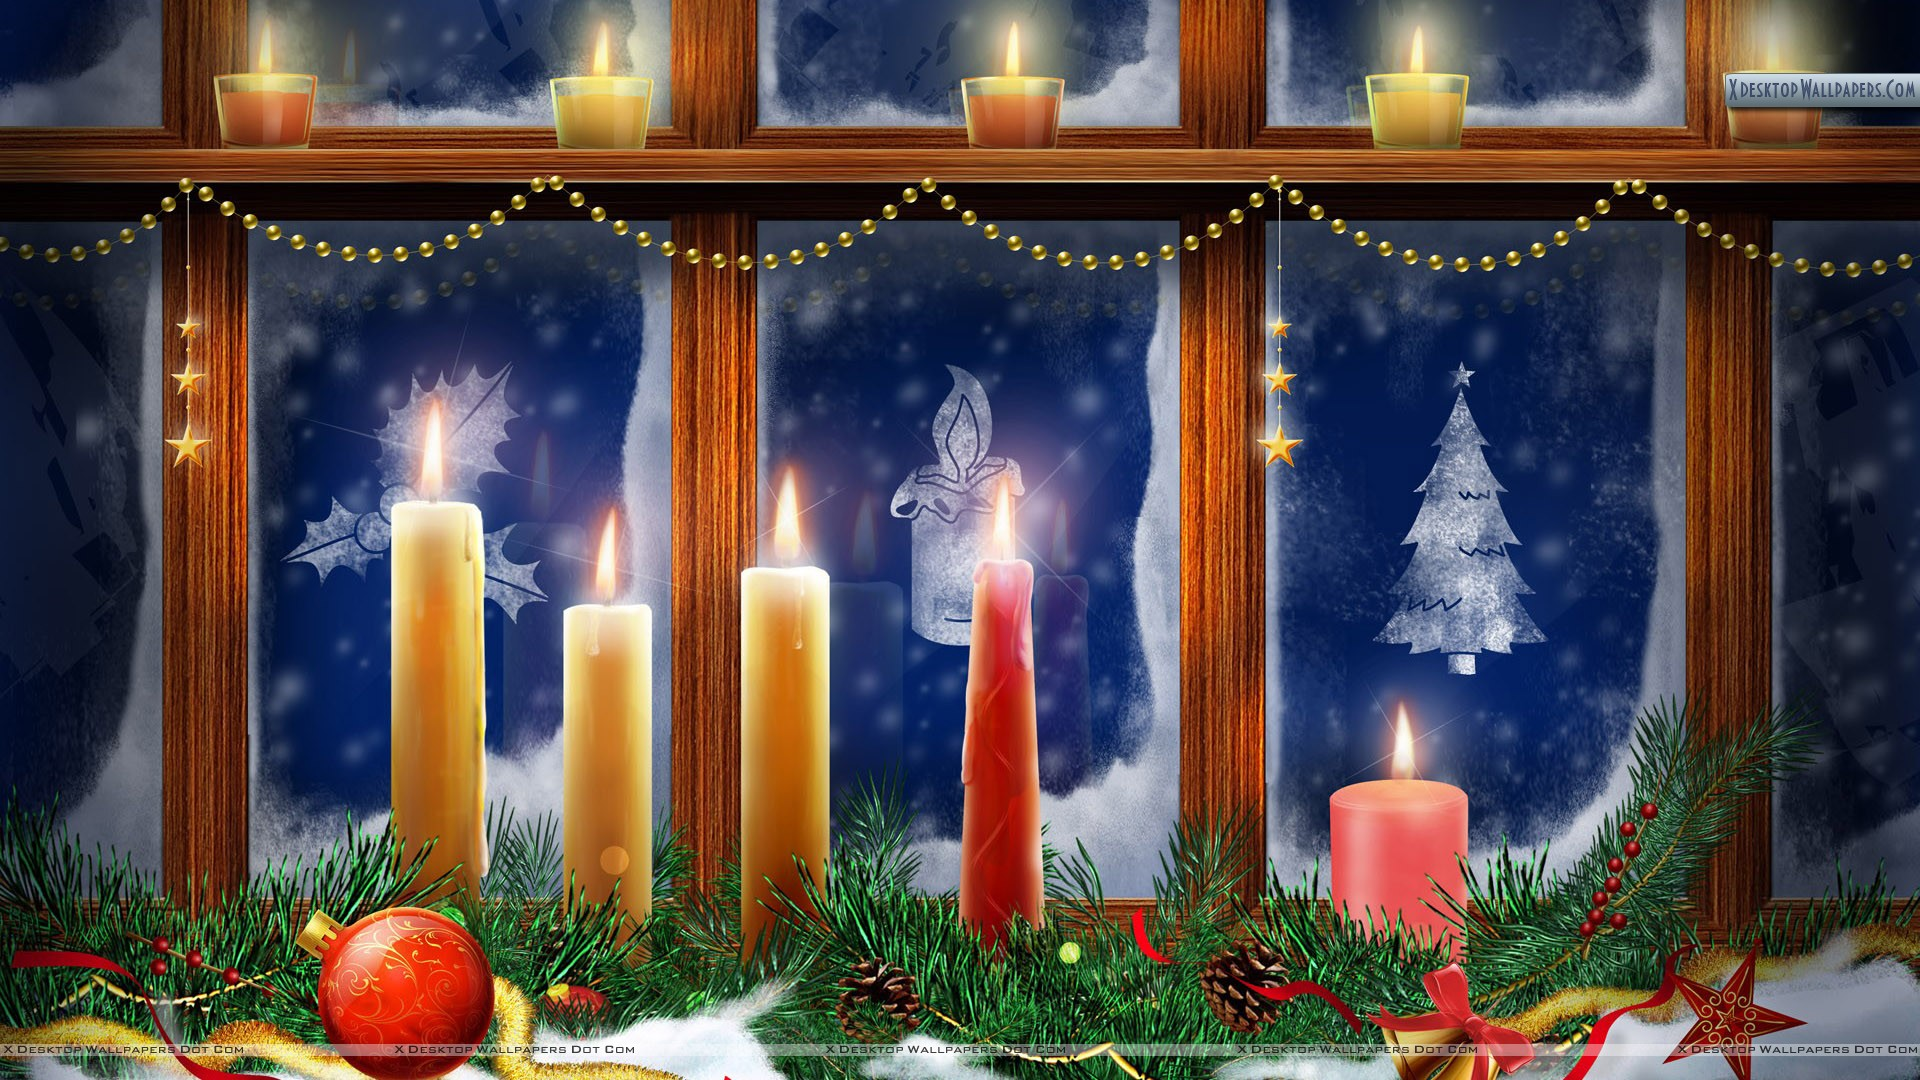 christmas wallpapers, photos & images in hd